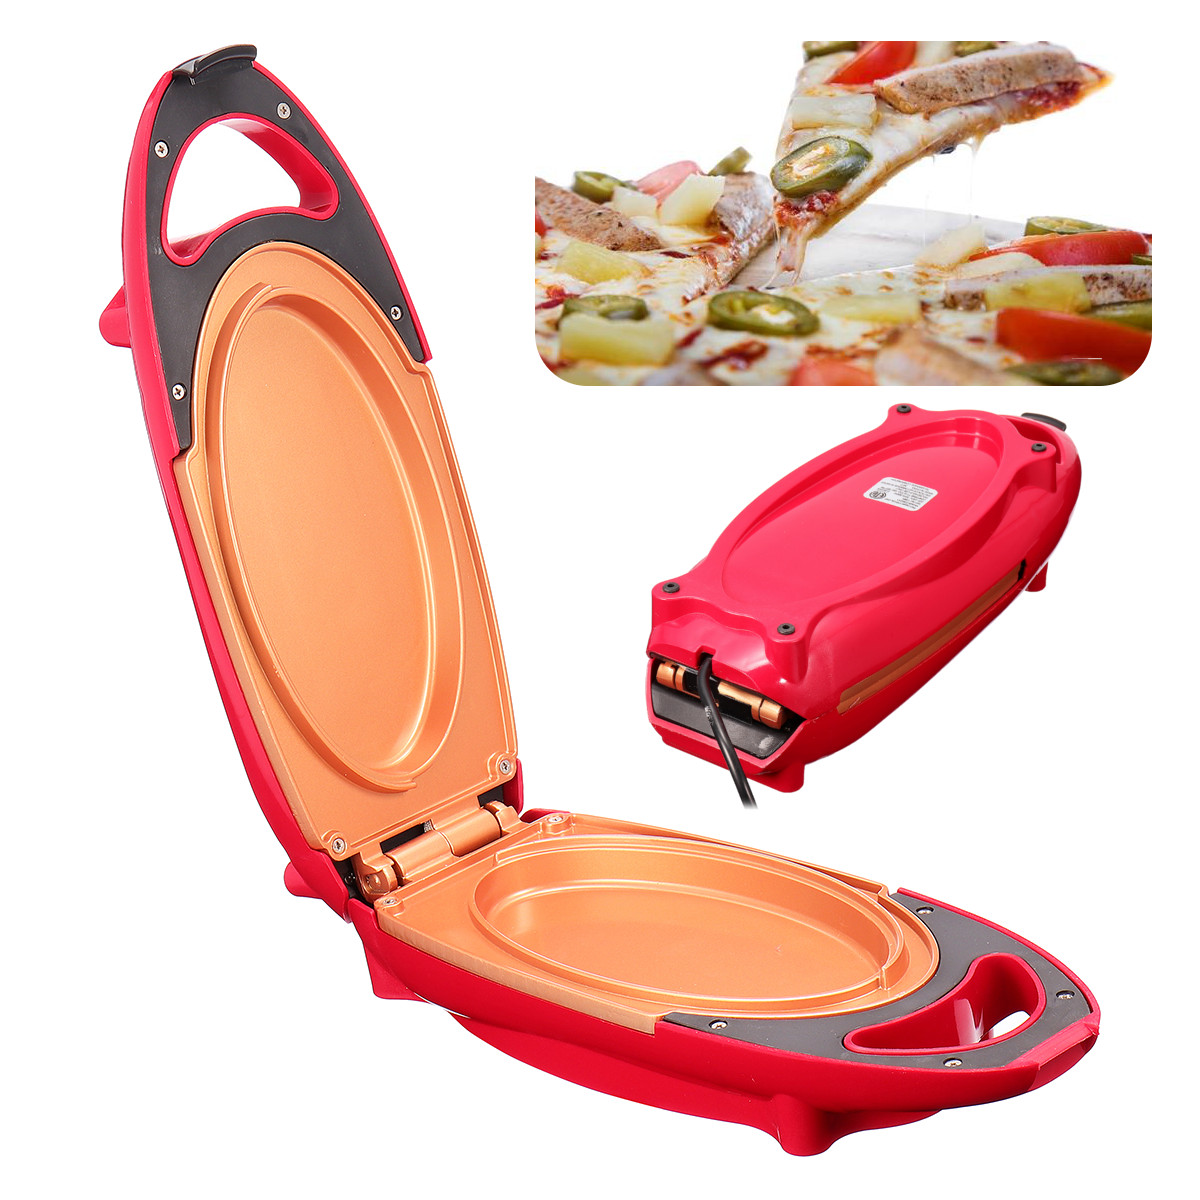 Non stick 5 Minute Chef Double Coated Smokeless Electric Red Copper Pan Cooker Barbecue Meals Pan Kitchen Cooking Pizza Pancake